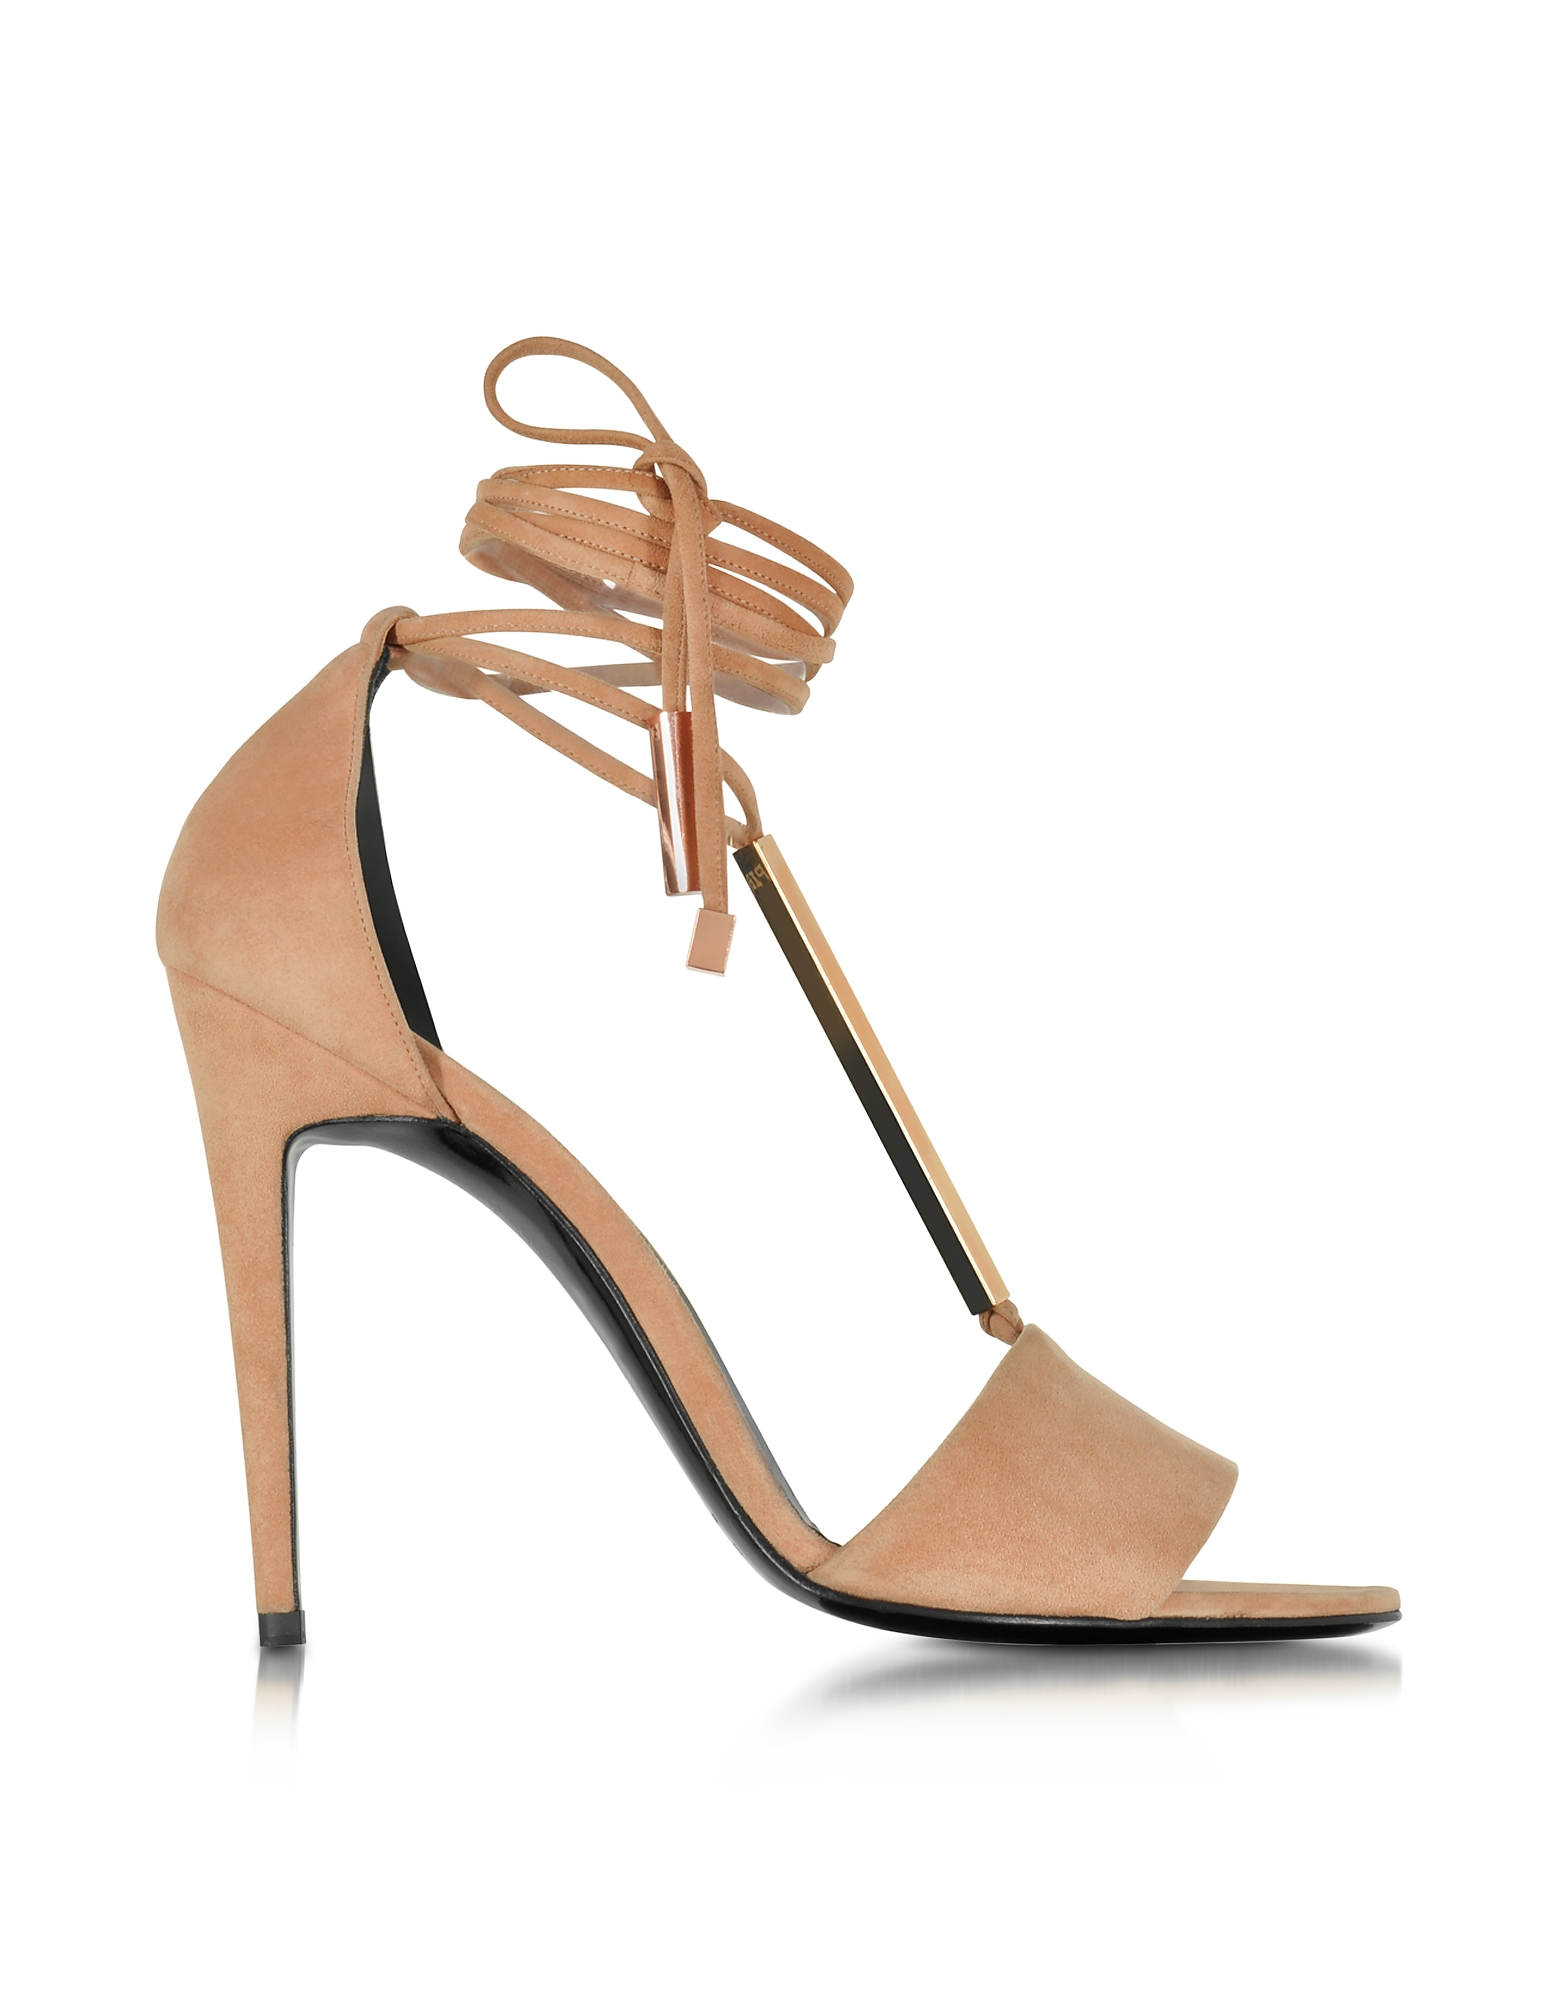 Pierre Hardy Shoes, Blondie Nude Suede High Heel Sandals